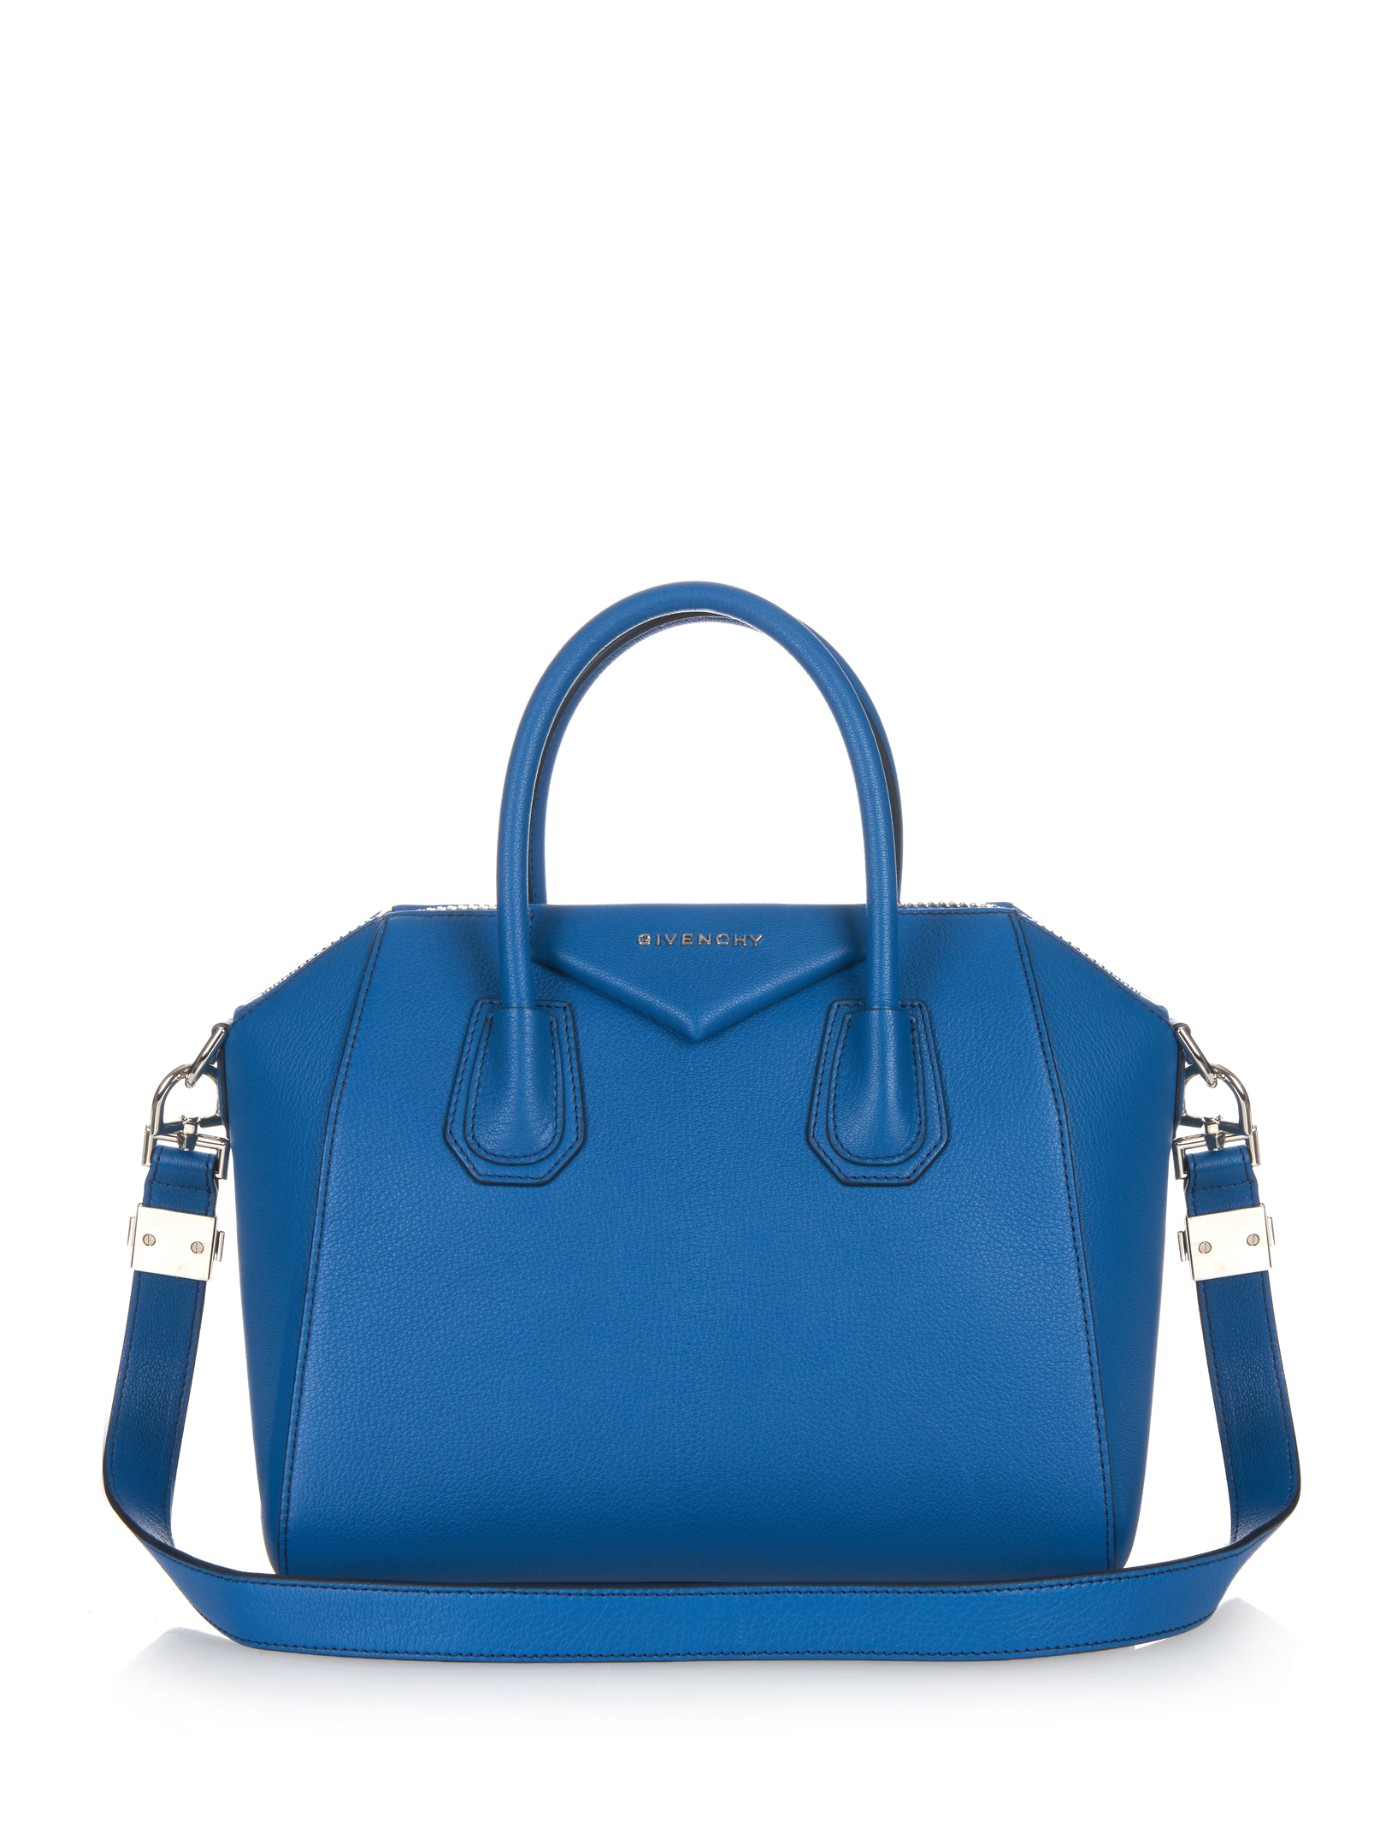 4cc8aa1e2cf3 Lyst - Givenchy Antigona Small Leather Tote in Blue